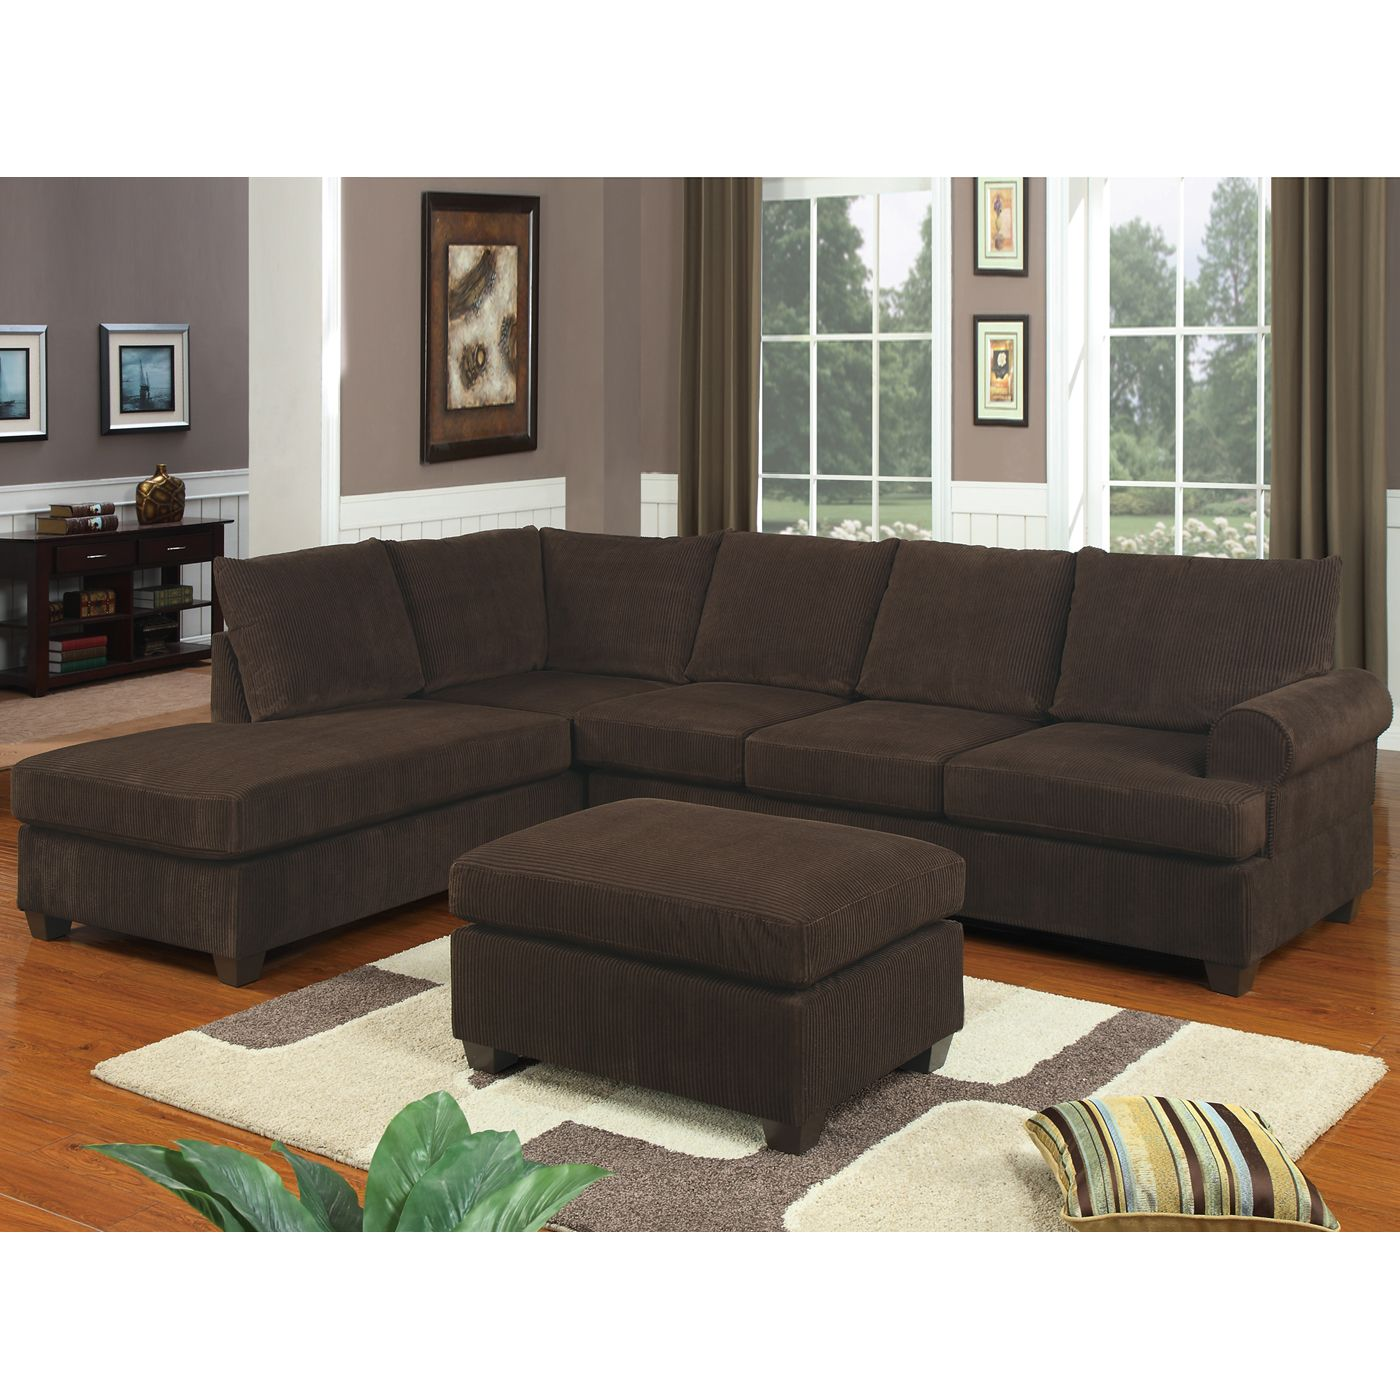 Poundex Furniture F7135 Bobkona Two Piece Sectional Sofa At Atg S Browse Our Sofas All With Free Shipping And Best Price Guaranteed